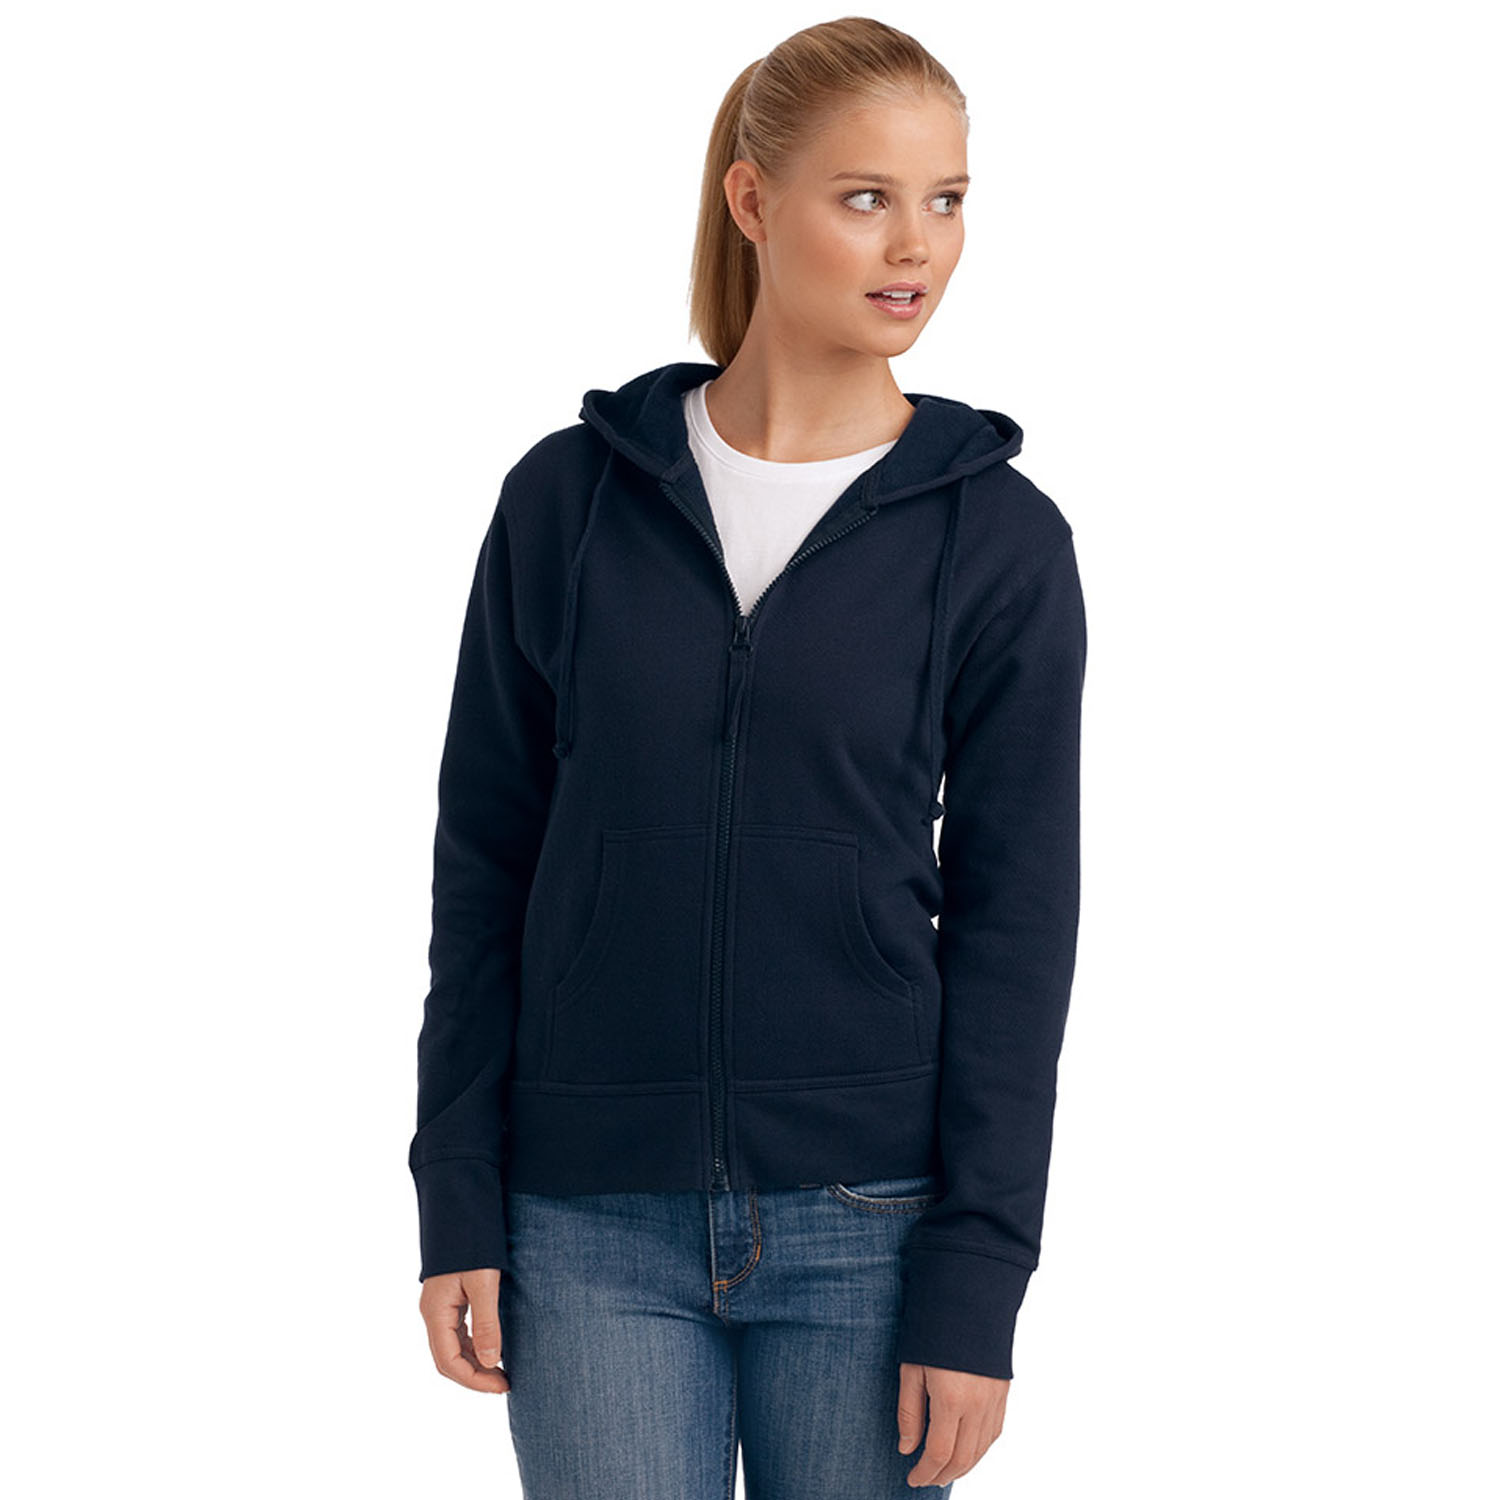 Yazzoo Custom Hoodies. Here at Yazzoo we would definitely say our speciality is Personalised Hoodies. We have selected the best quality Hooded Tops in the industry, offering a range from basic cheap hoodies to premium, ultra high quality hoodies/5().